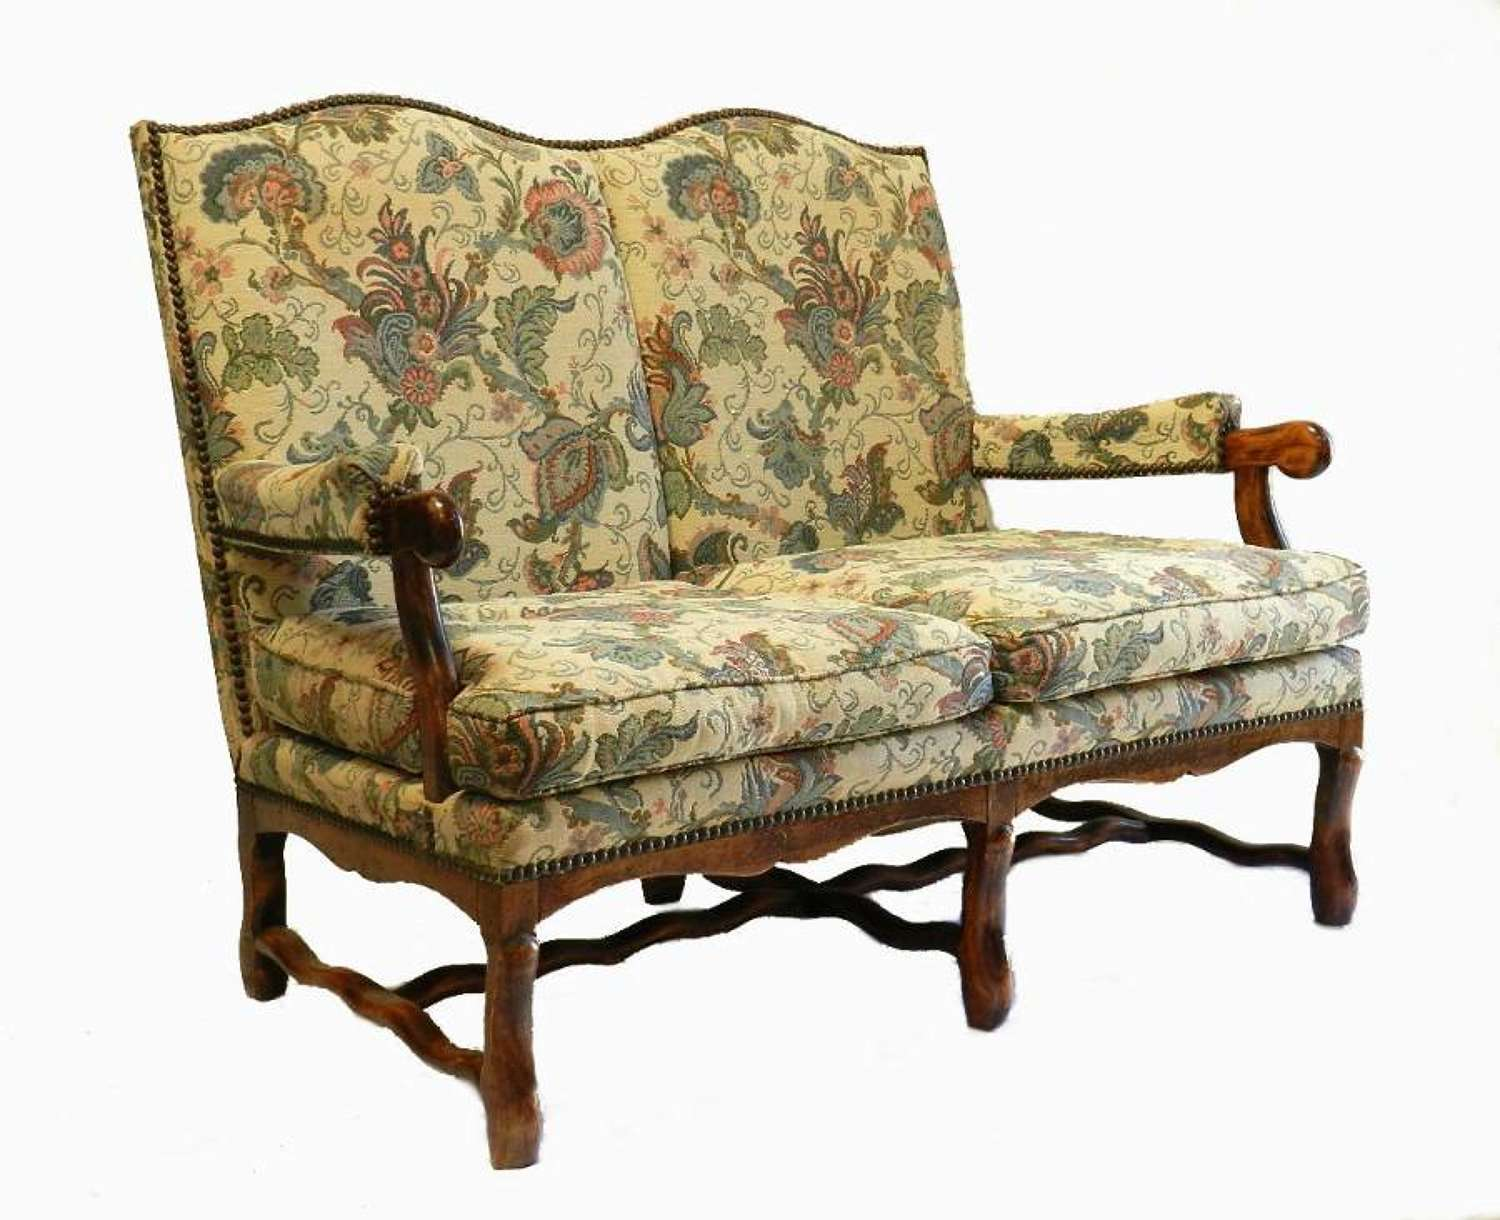 French Os de Mouton Sofa covers can be changed